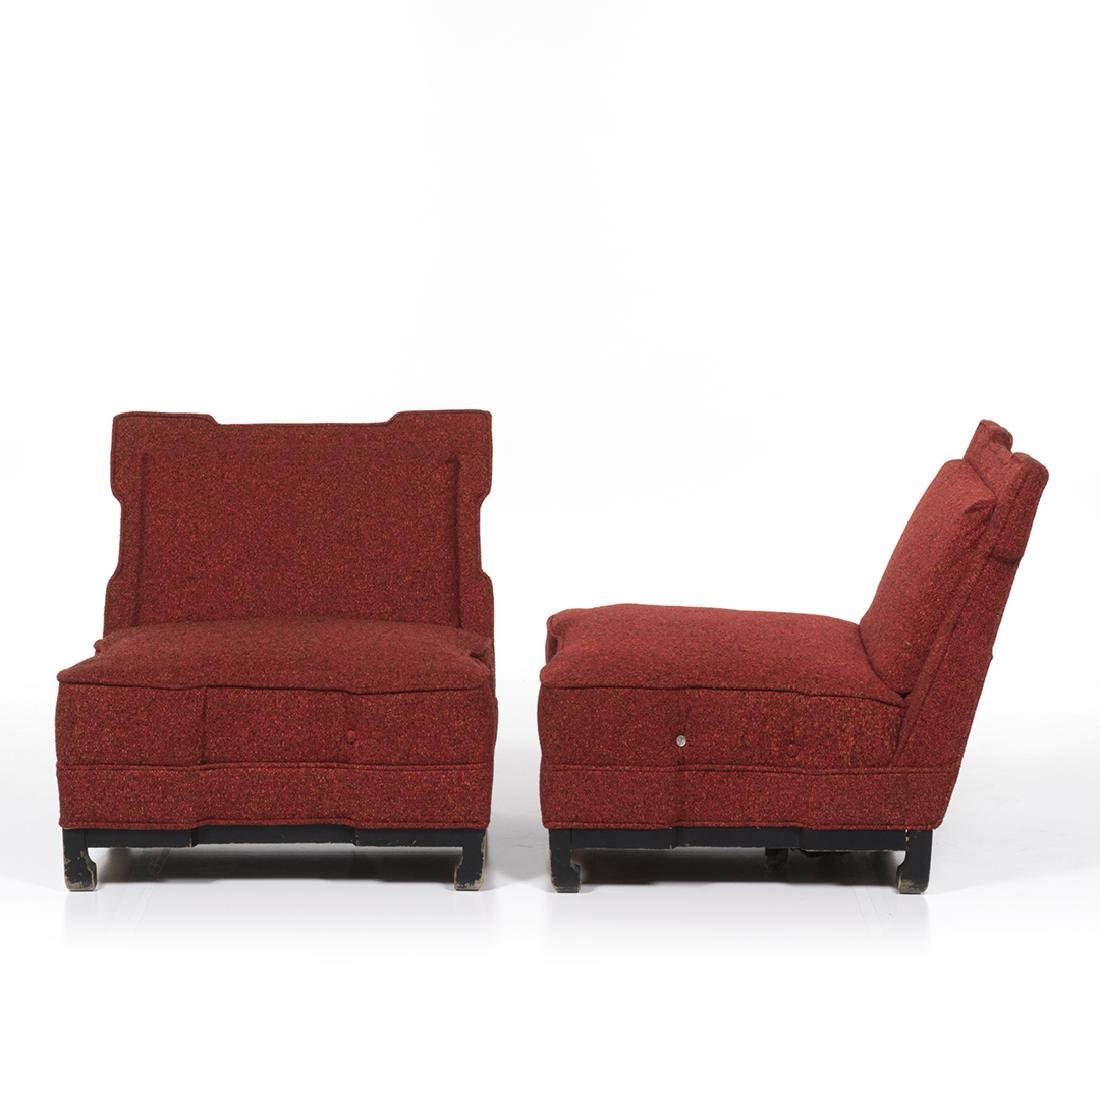 James Mont Style Club Chairs - 2